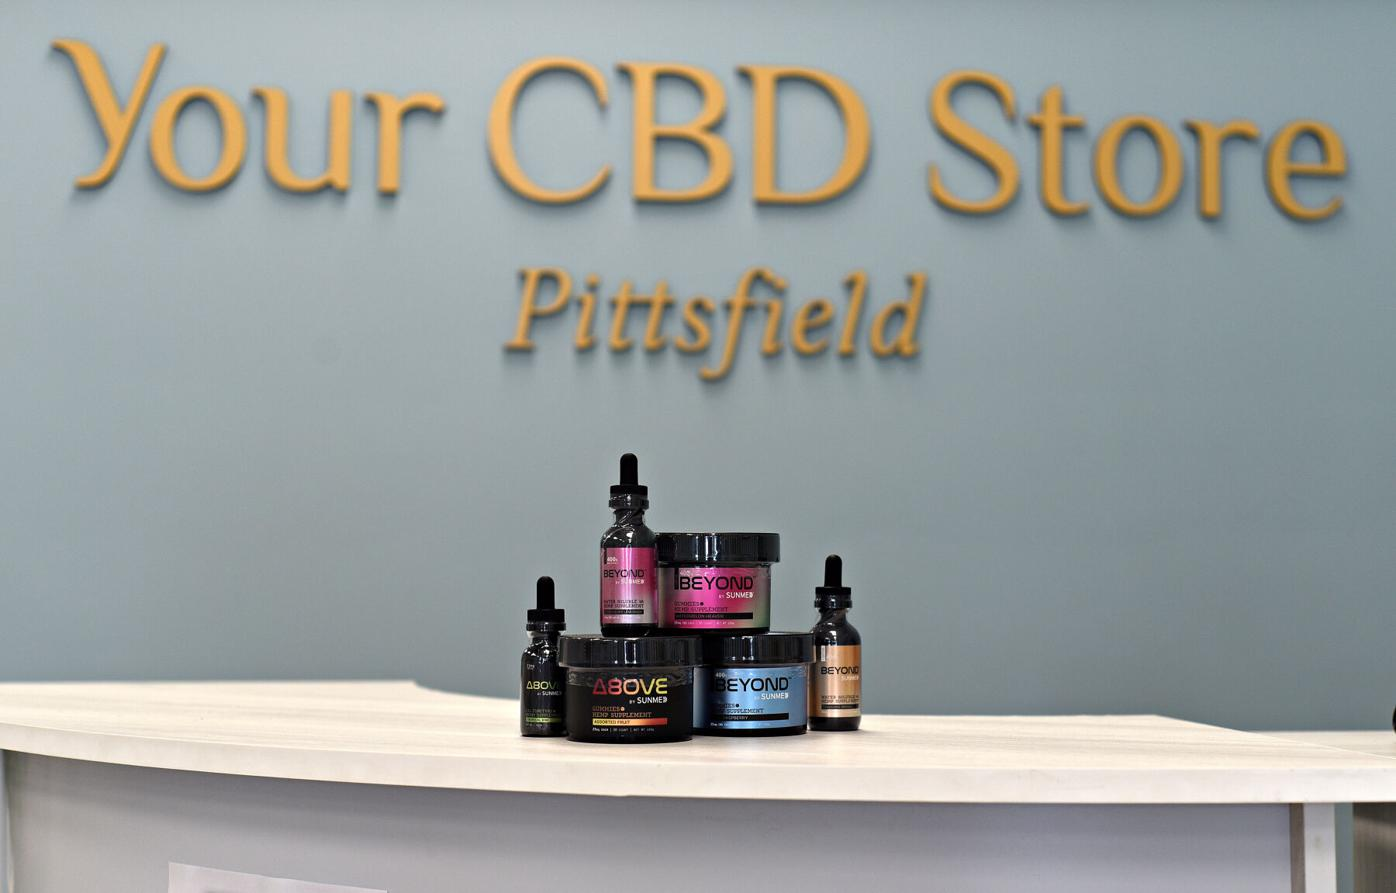 The Above and Beyond line of CBD products on display